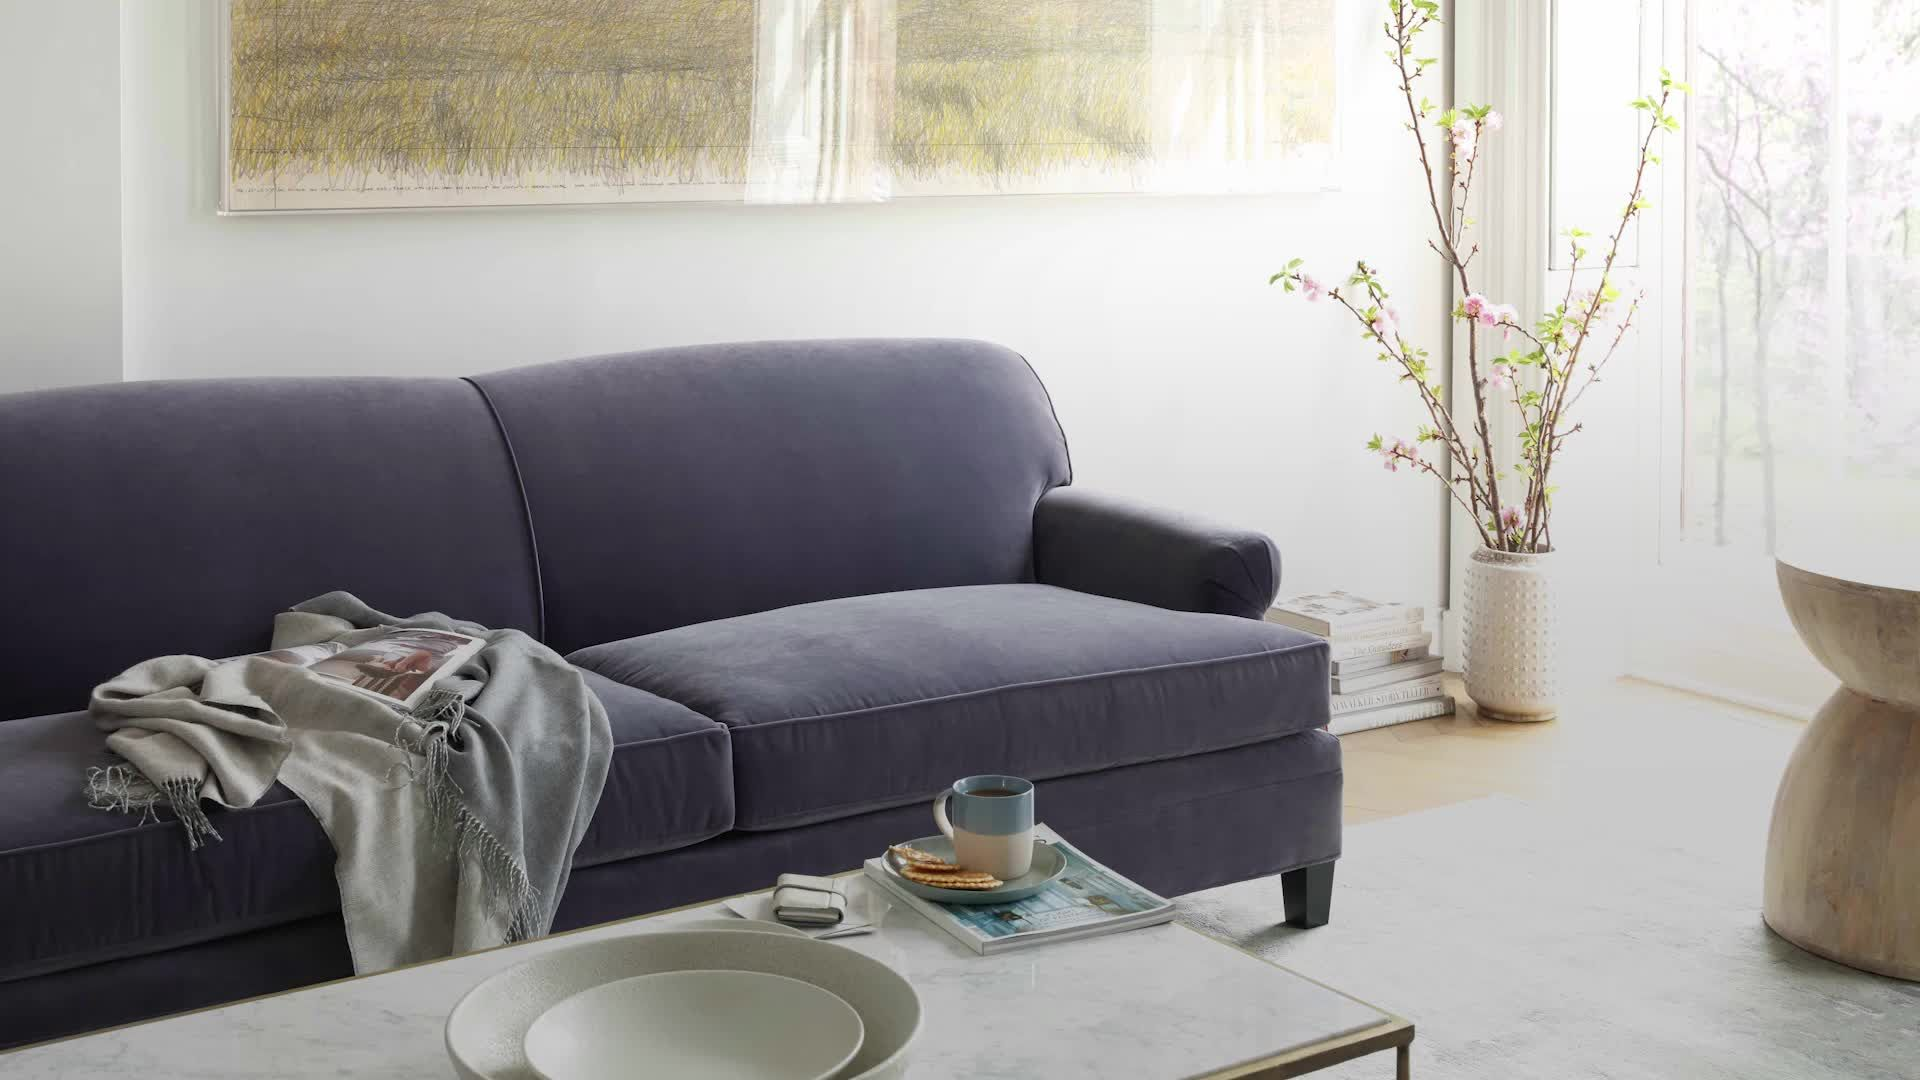 This Startup Furniture Company Makes It So Easy to Customize Your Own Sofa